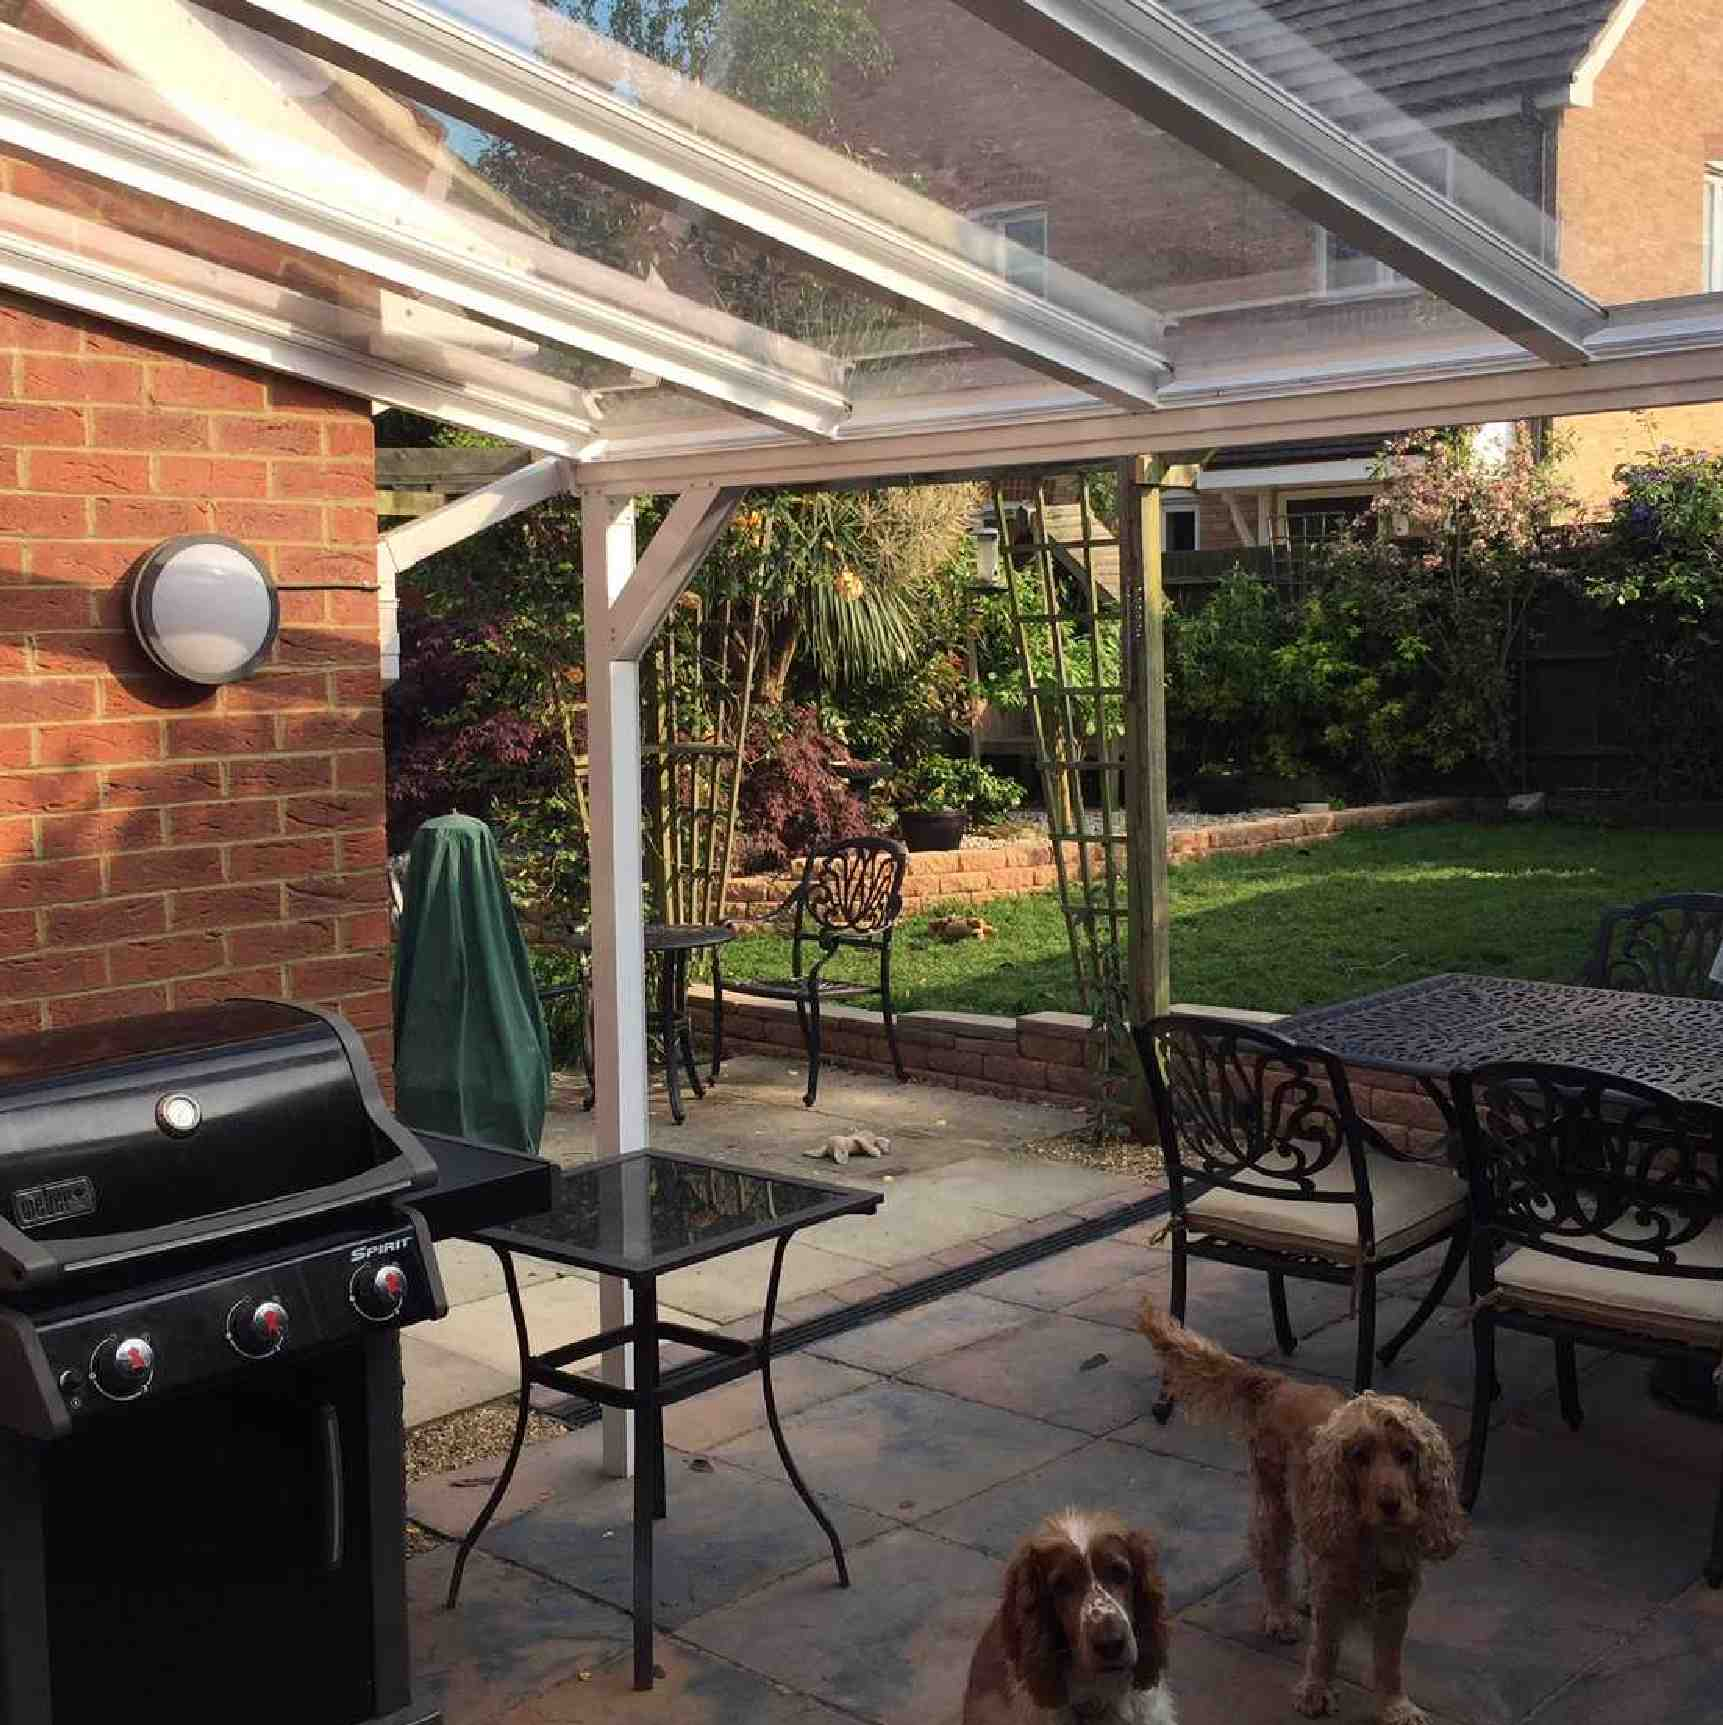 Omega Verandah with 16mm Polycarbonate Glazing - 12.0m (W) x 3.0m (P), (5) Supporting Posts